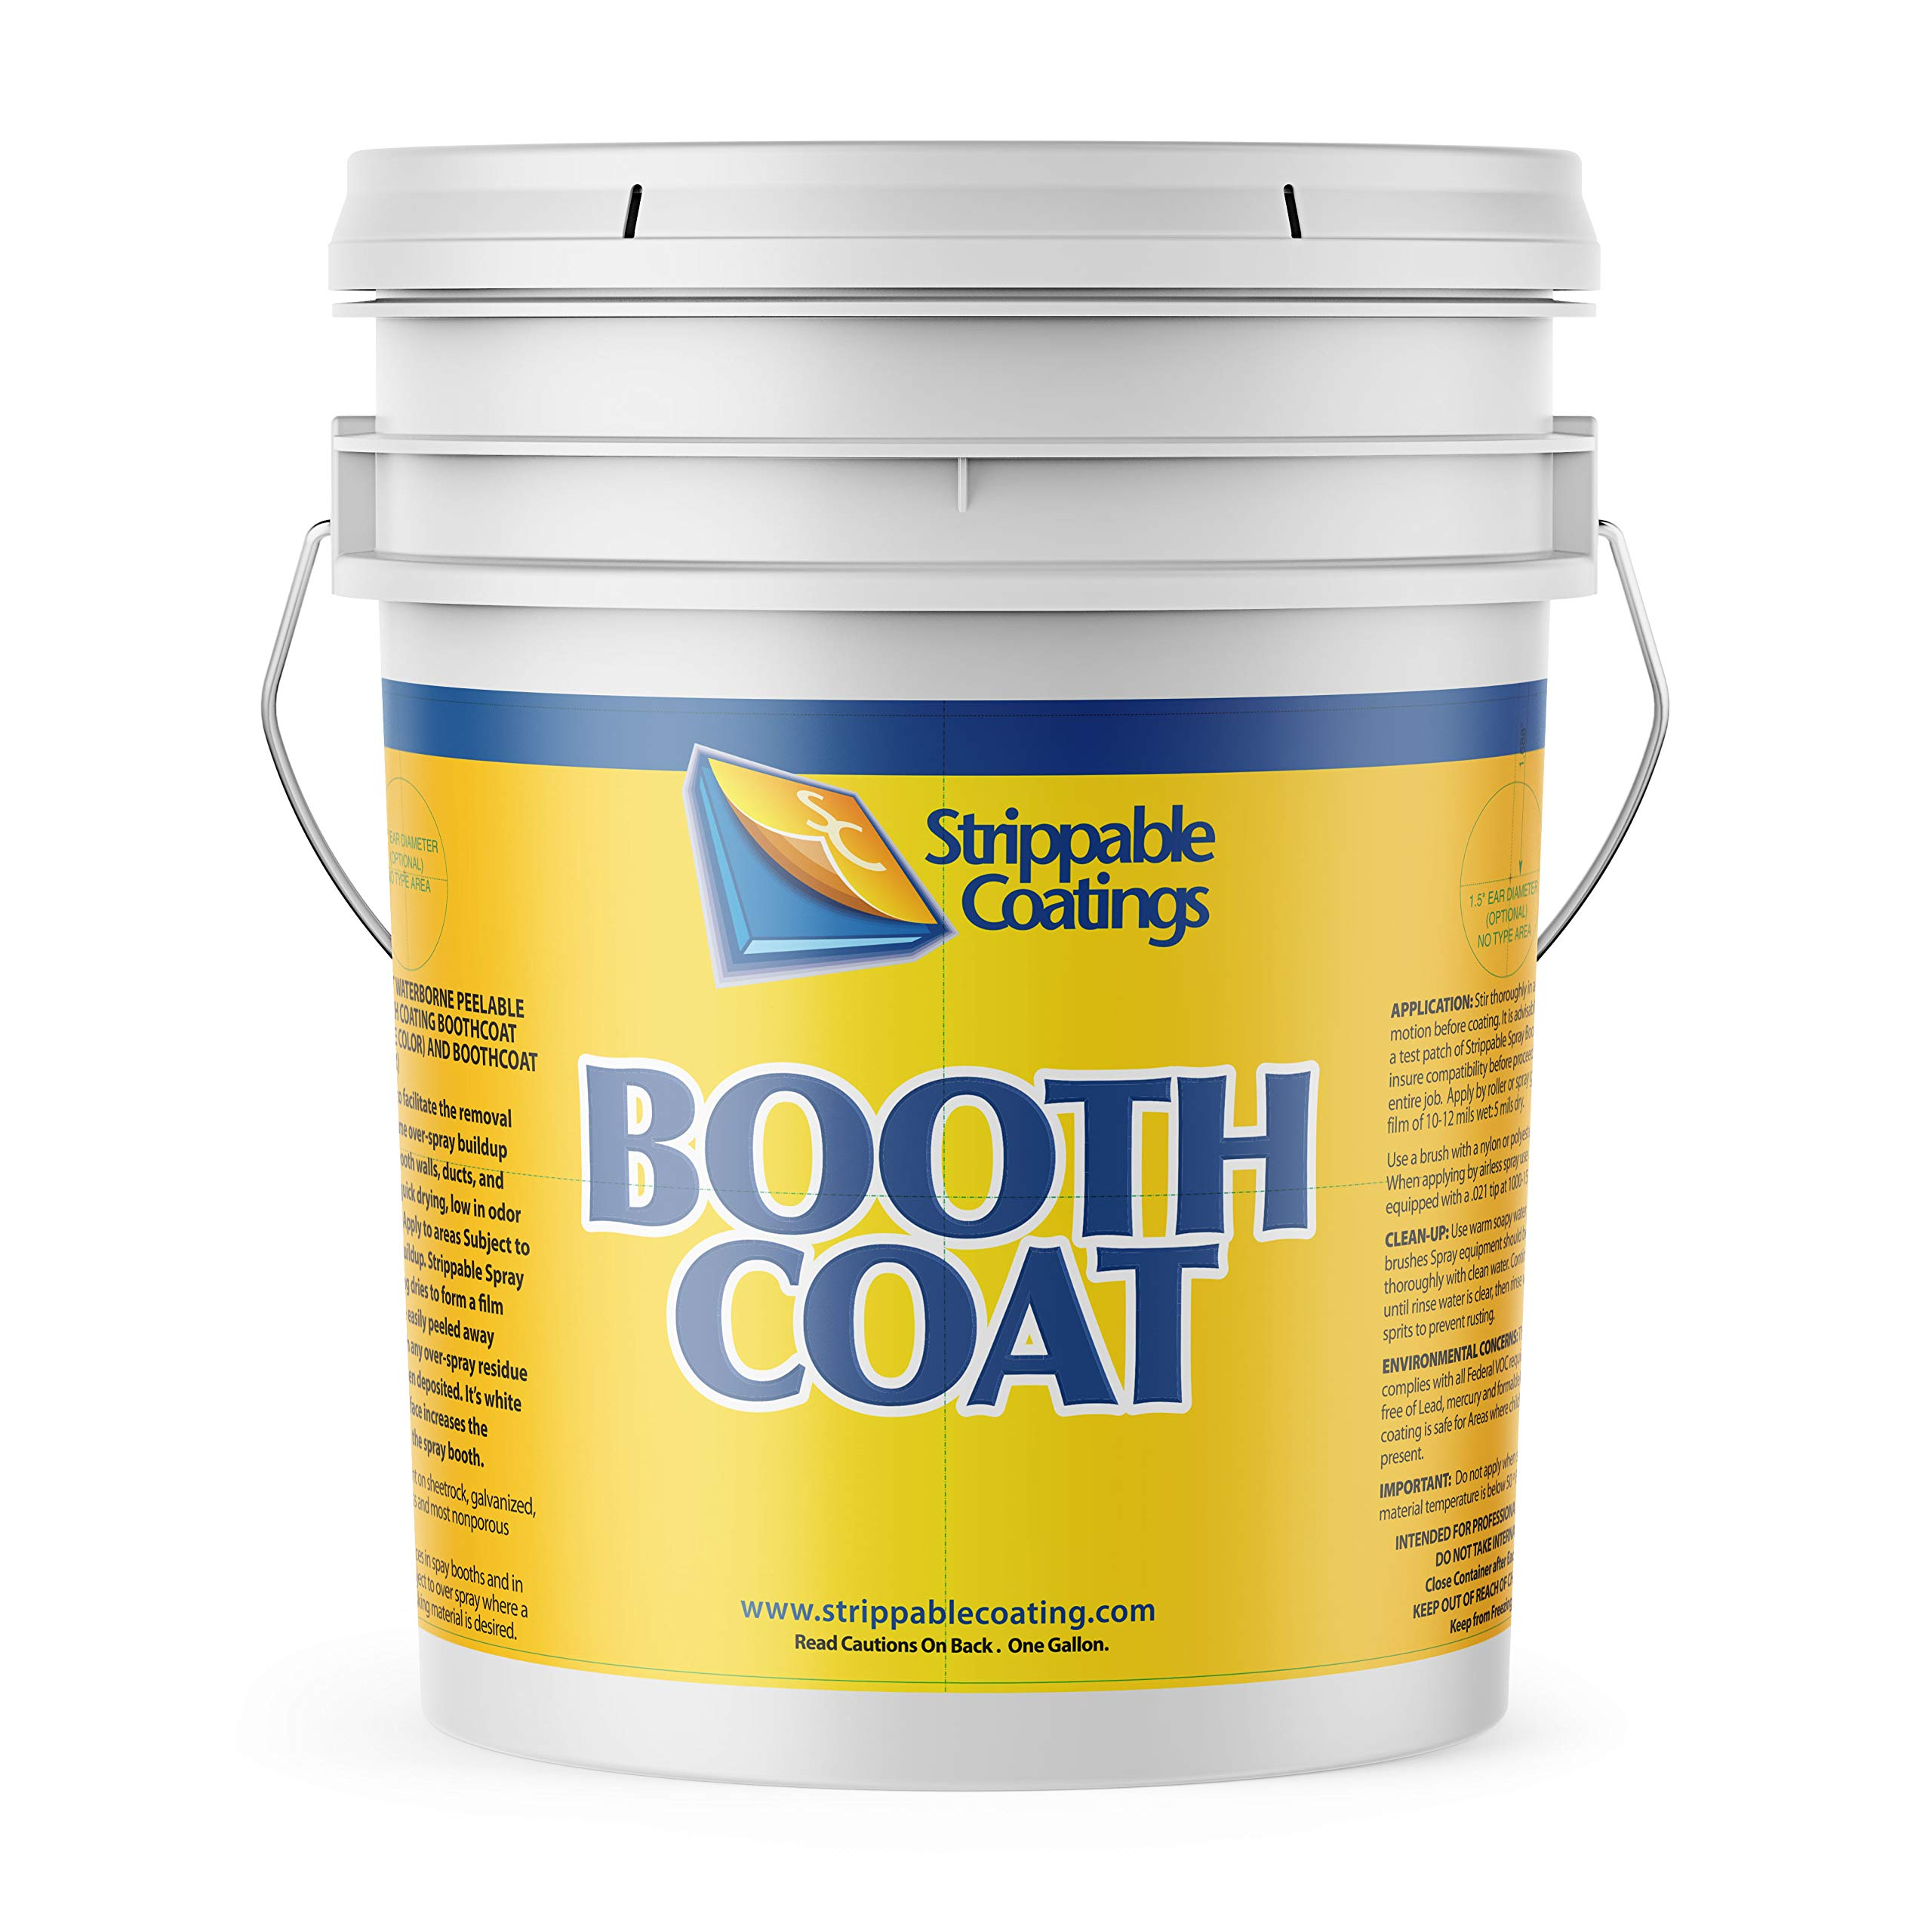 GeneralChemical BOOTHCOAT 5201   Paint Booth Coating Protective Paint   White Peelable Coating Paint for Walls, Ceilings, and Light Fixtures   Water Based (5 Gallons)